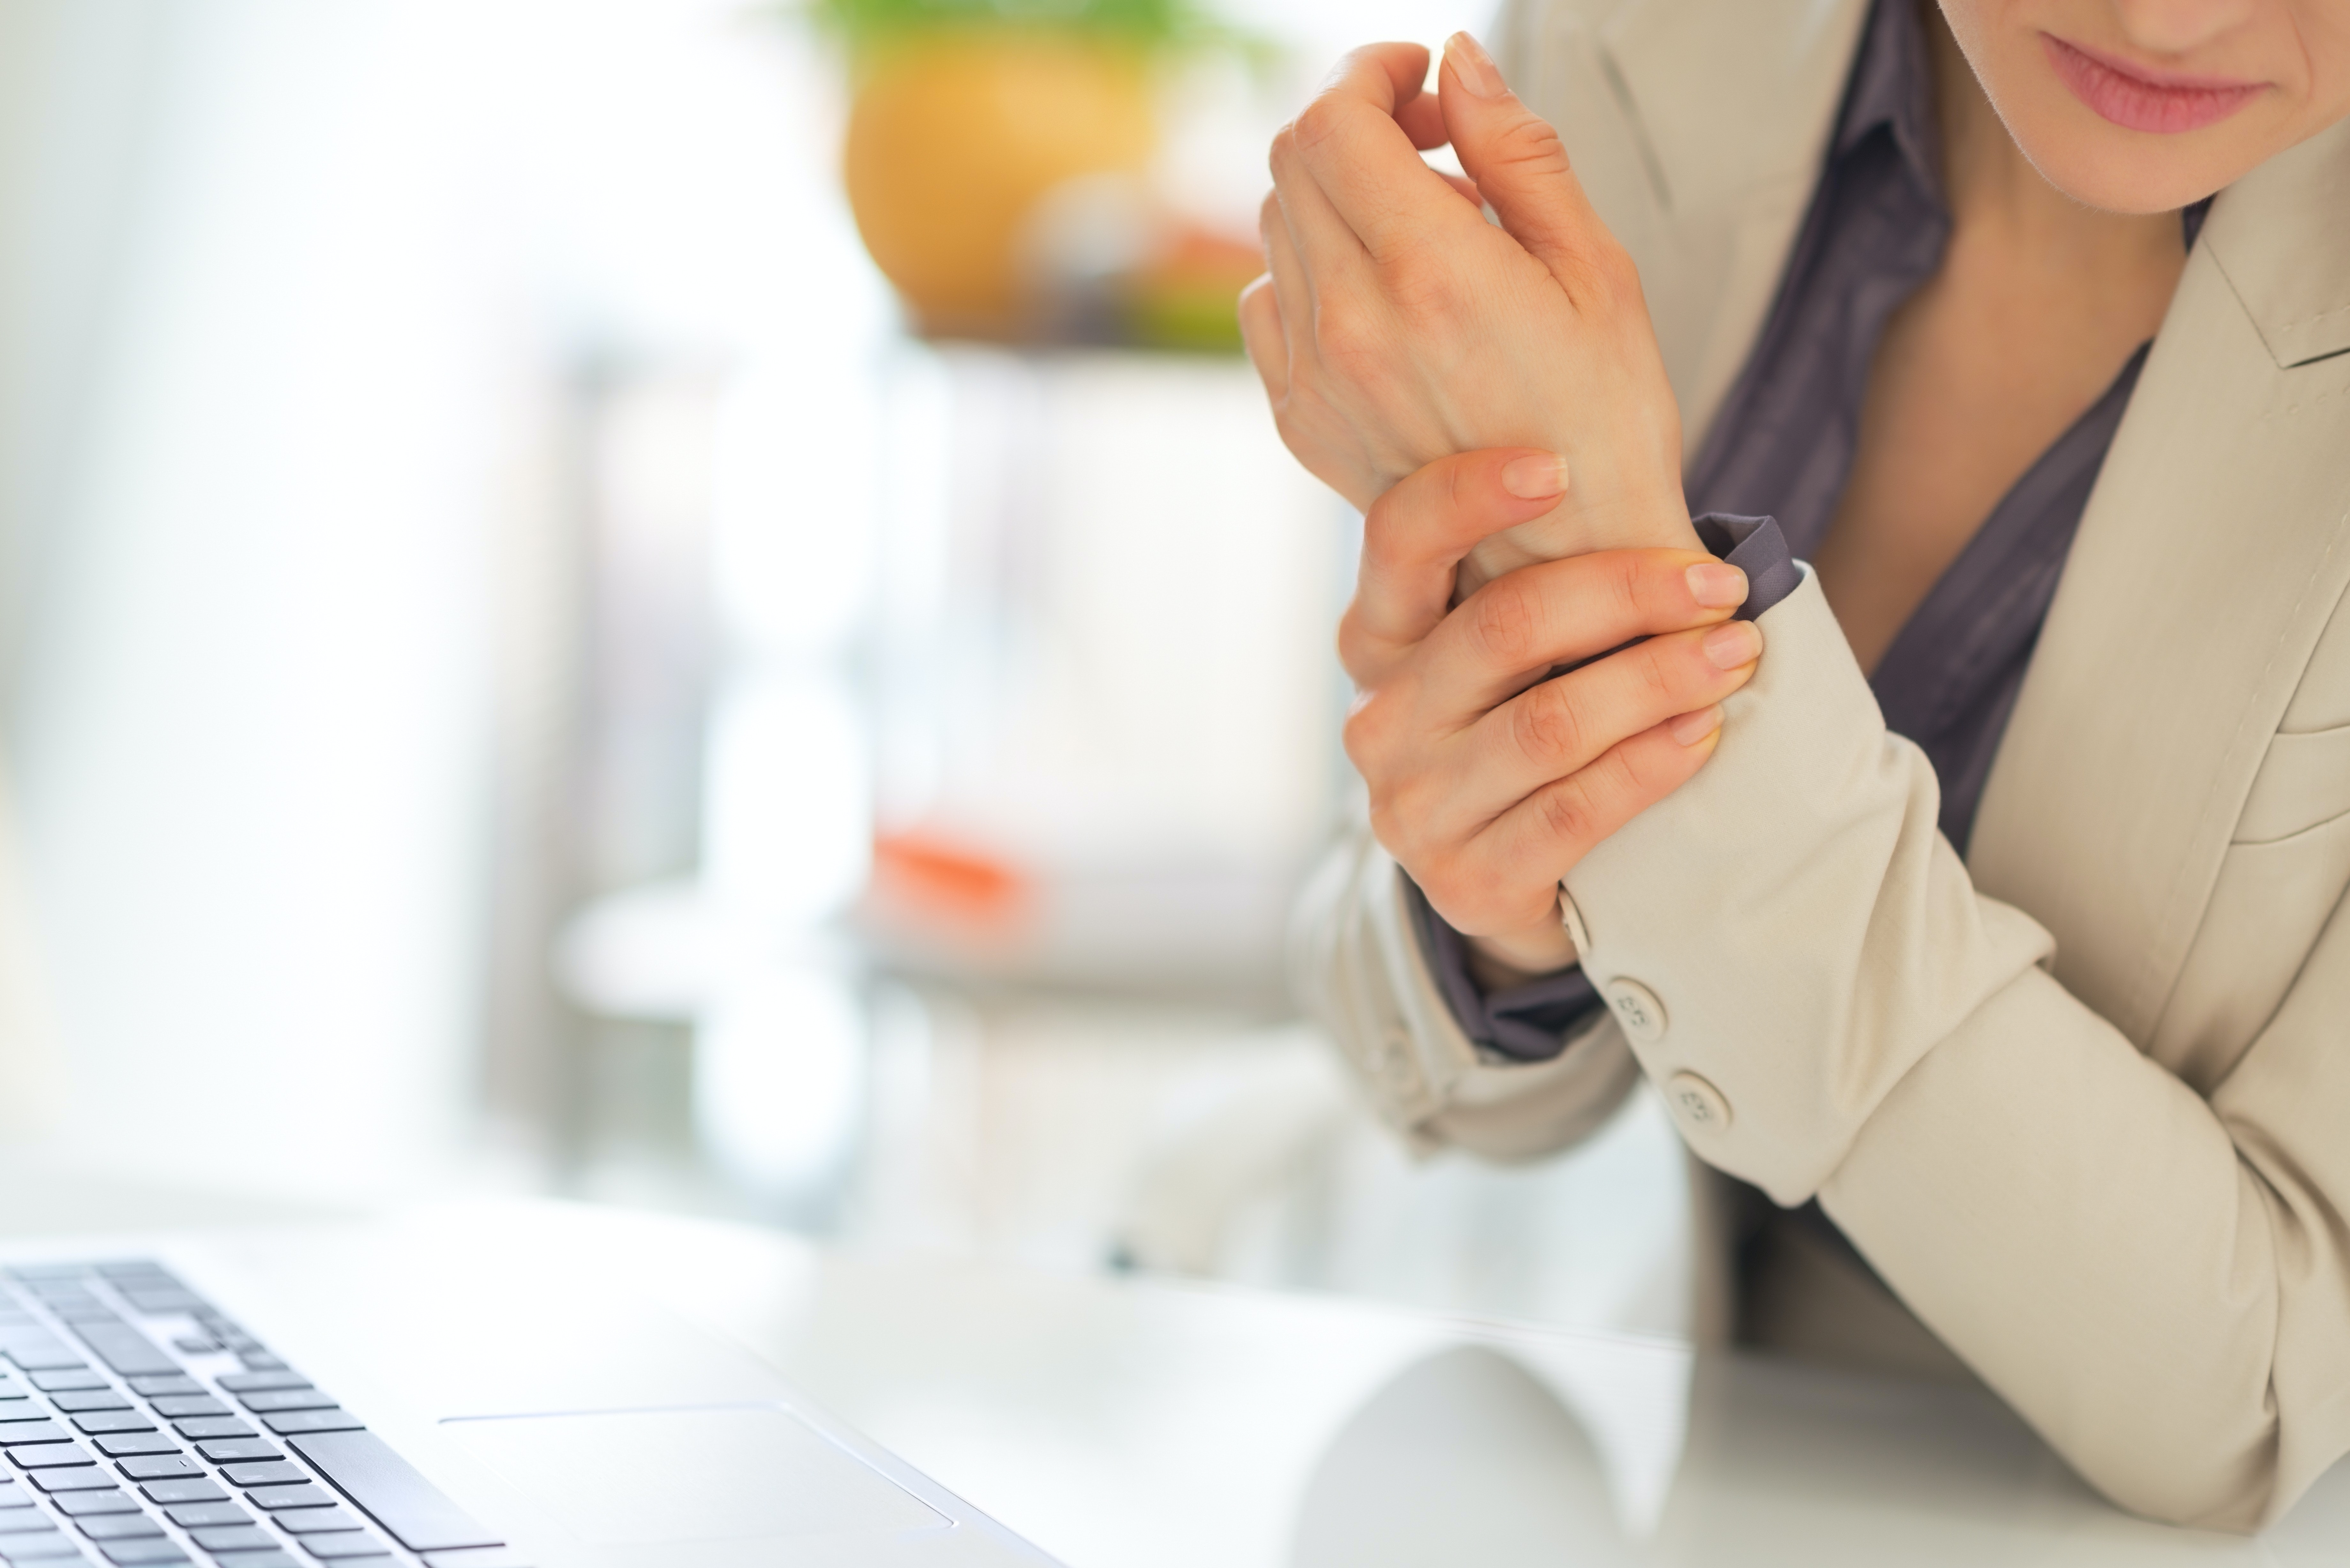 An image depicting a person suffering from Carpal Tunnel Syndrome symptoms